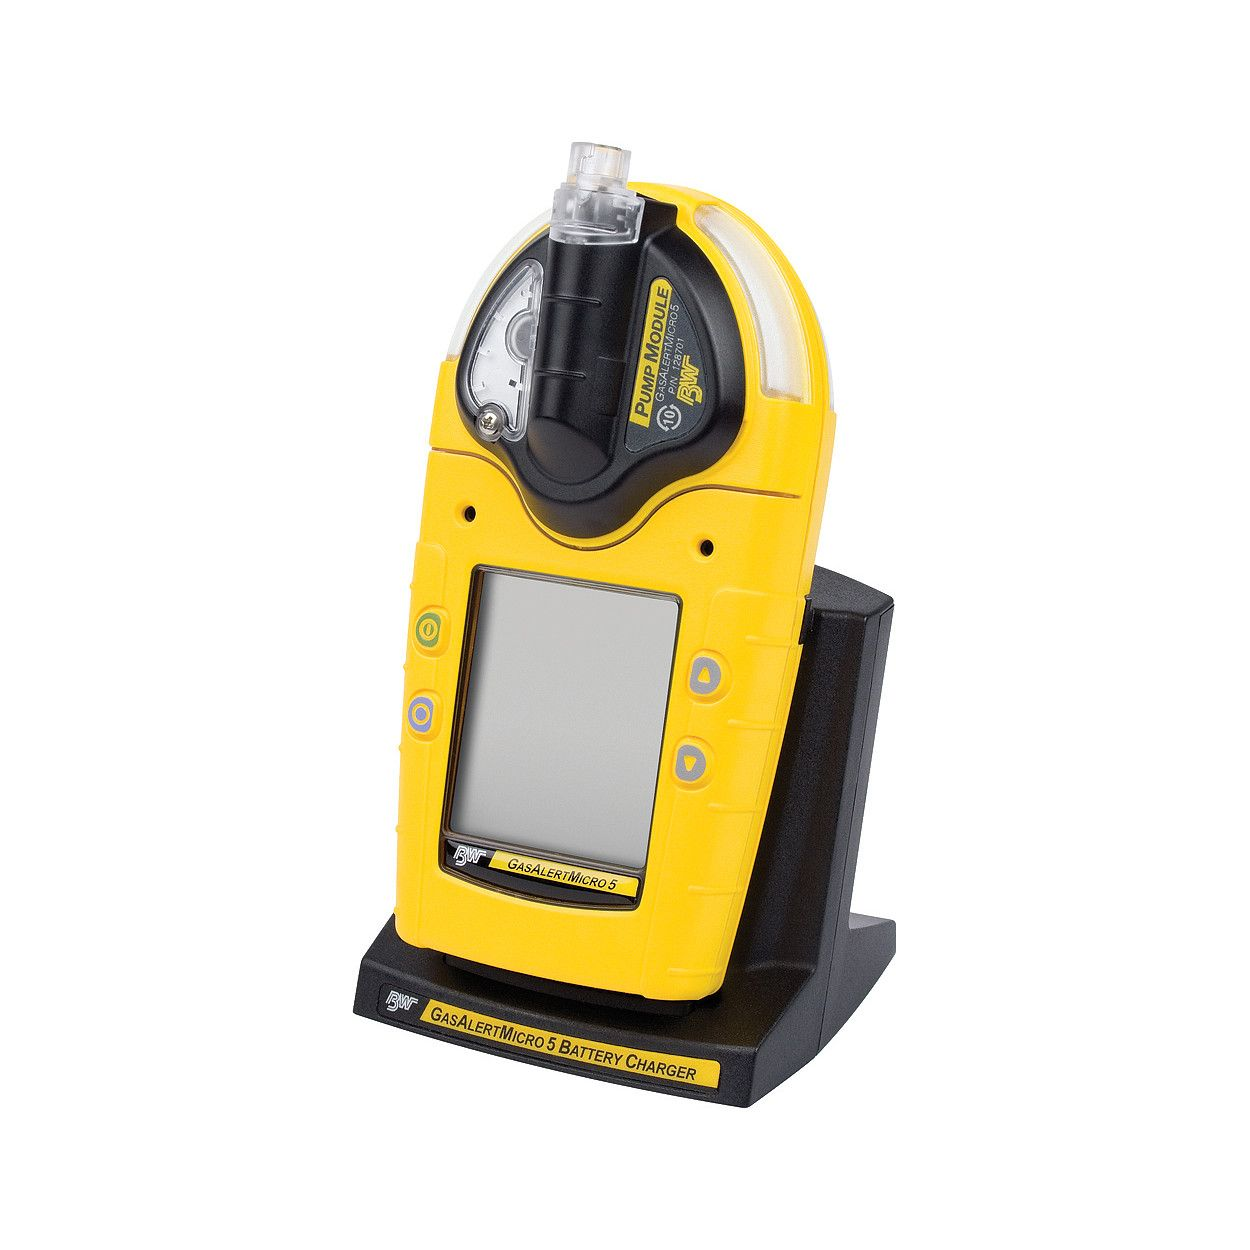 BW_GasAlertMicro_5_Series,_shown_with_pump_and_in_charger